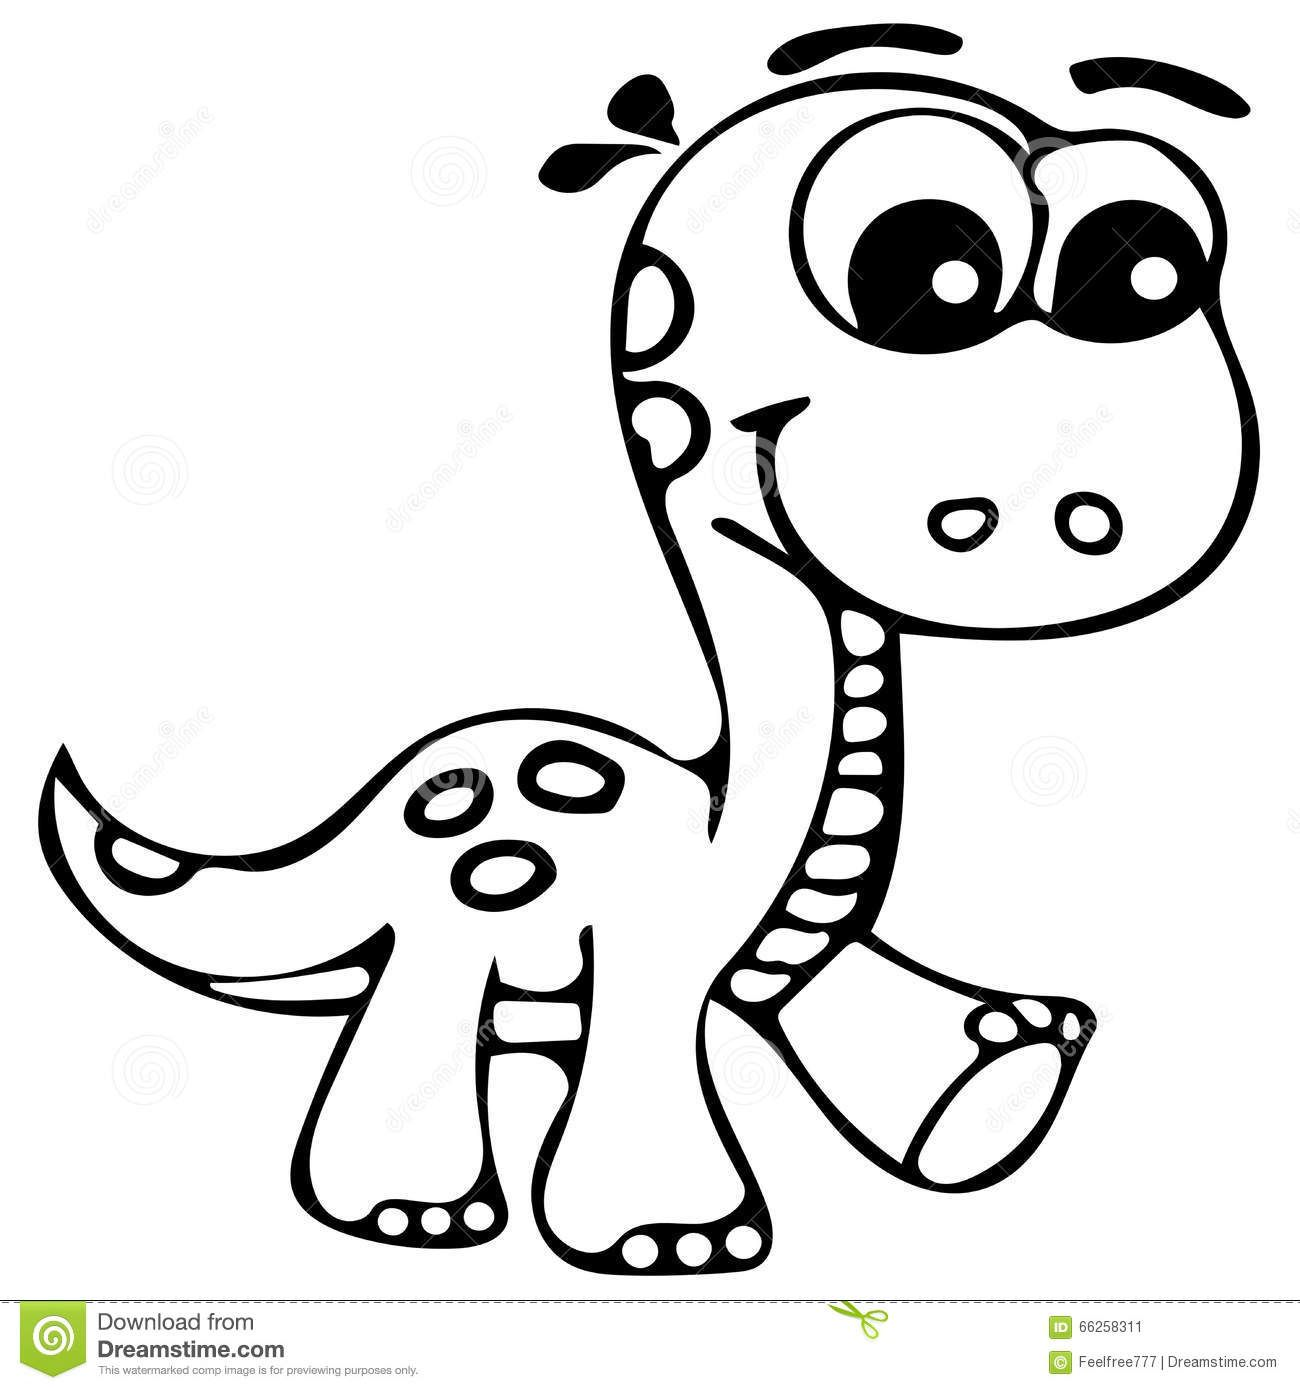 Easy cute dinosaur coloring pages in 2020 Dinosaur